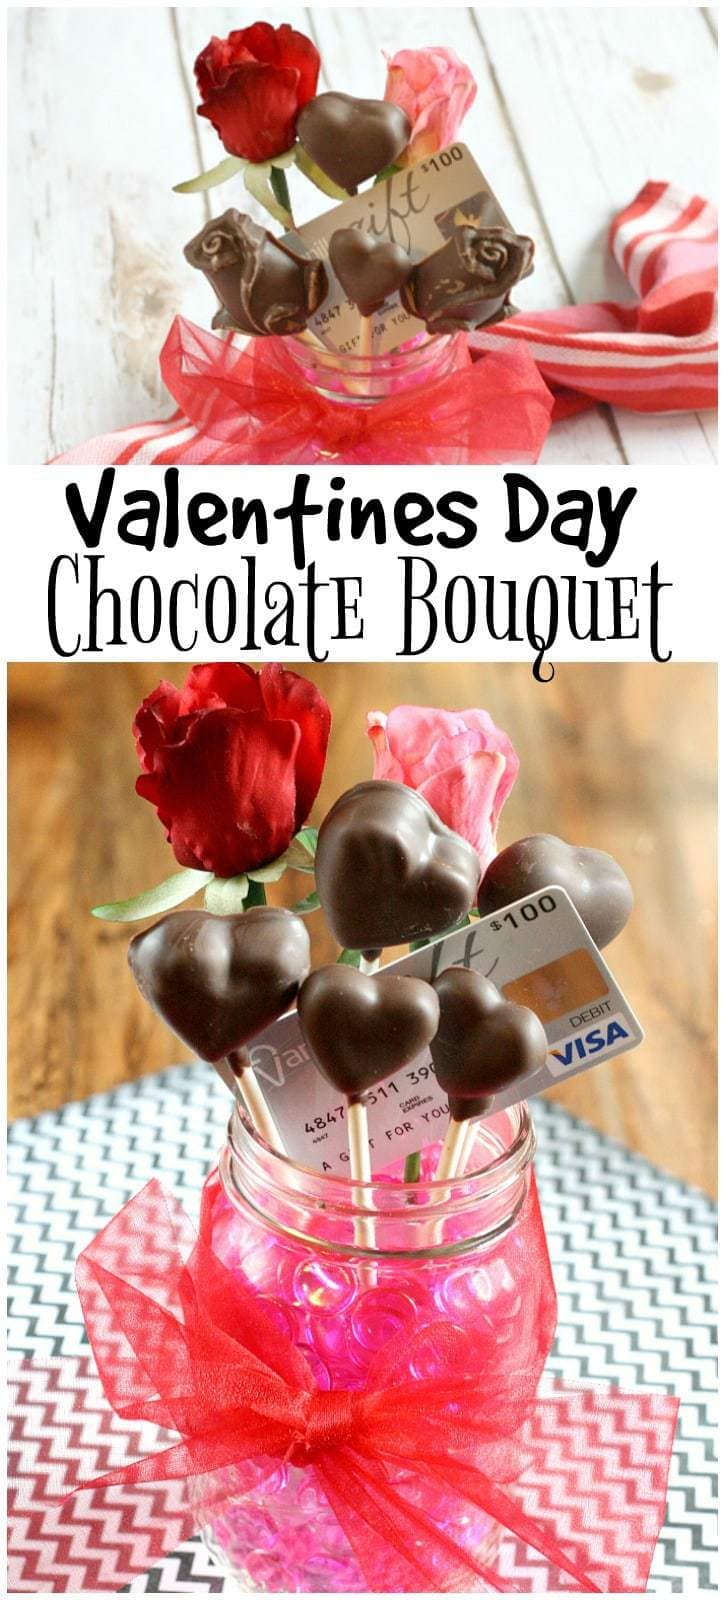 This Valentines Day Chocolate Bouquet is the perfect combination of chocolate, flowers and a gift card that your sweetheart is guaranteed to adore!